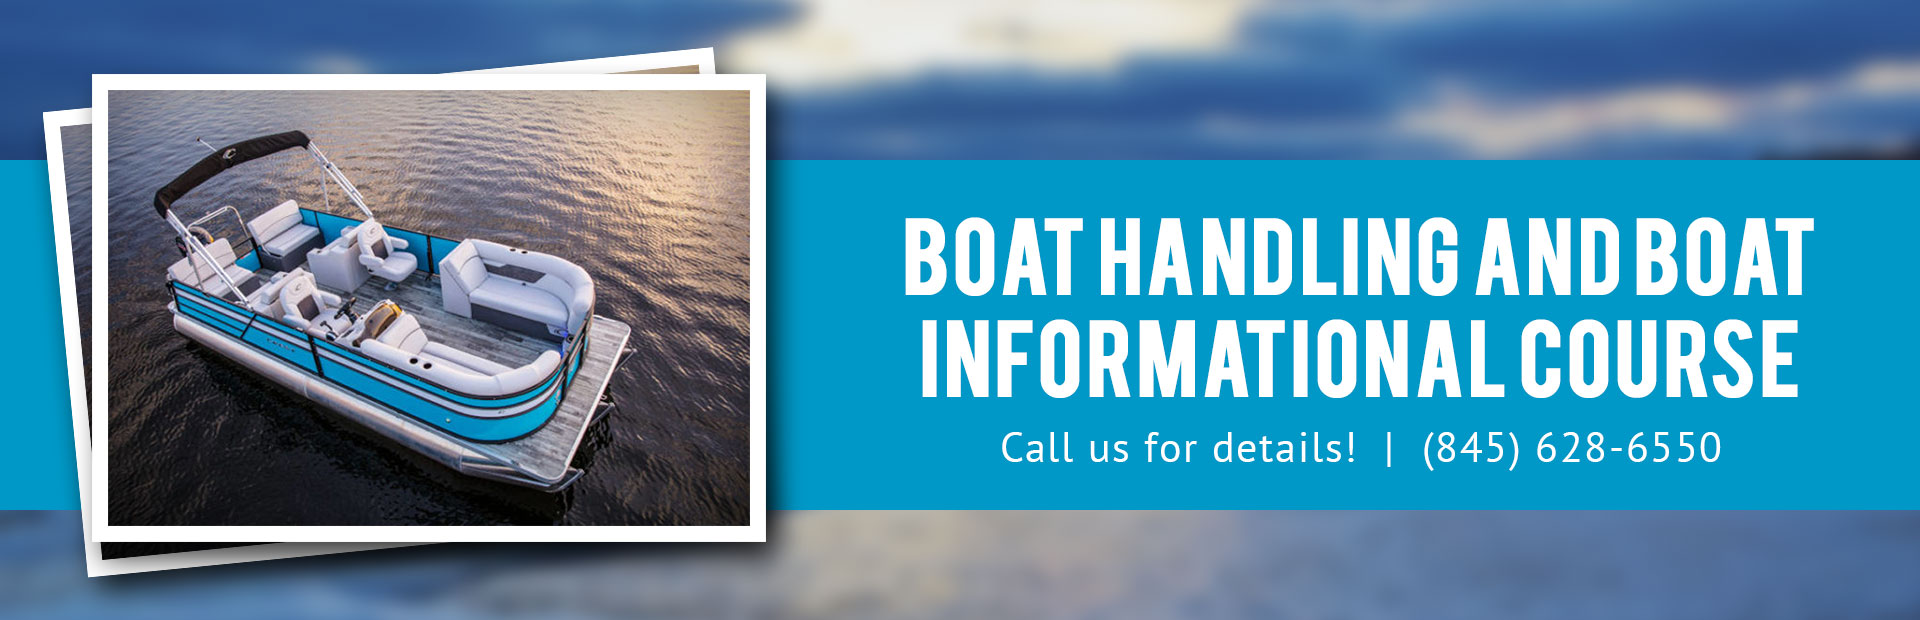 Boat handling and boat informational course